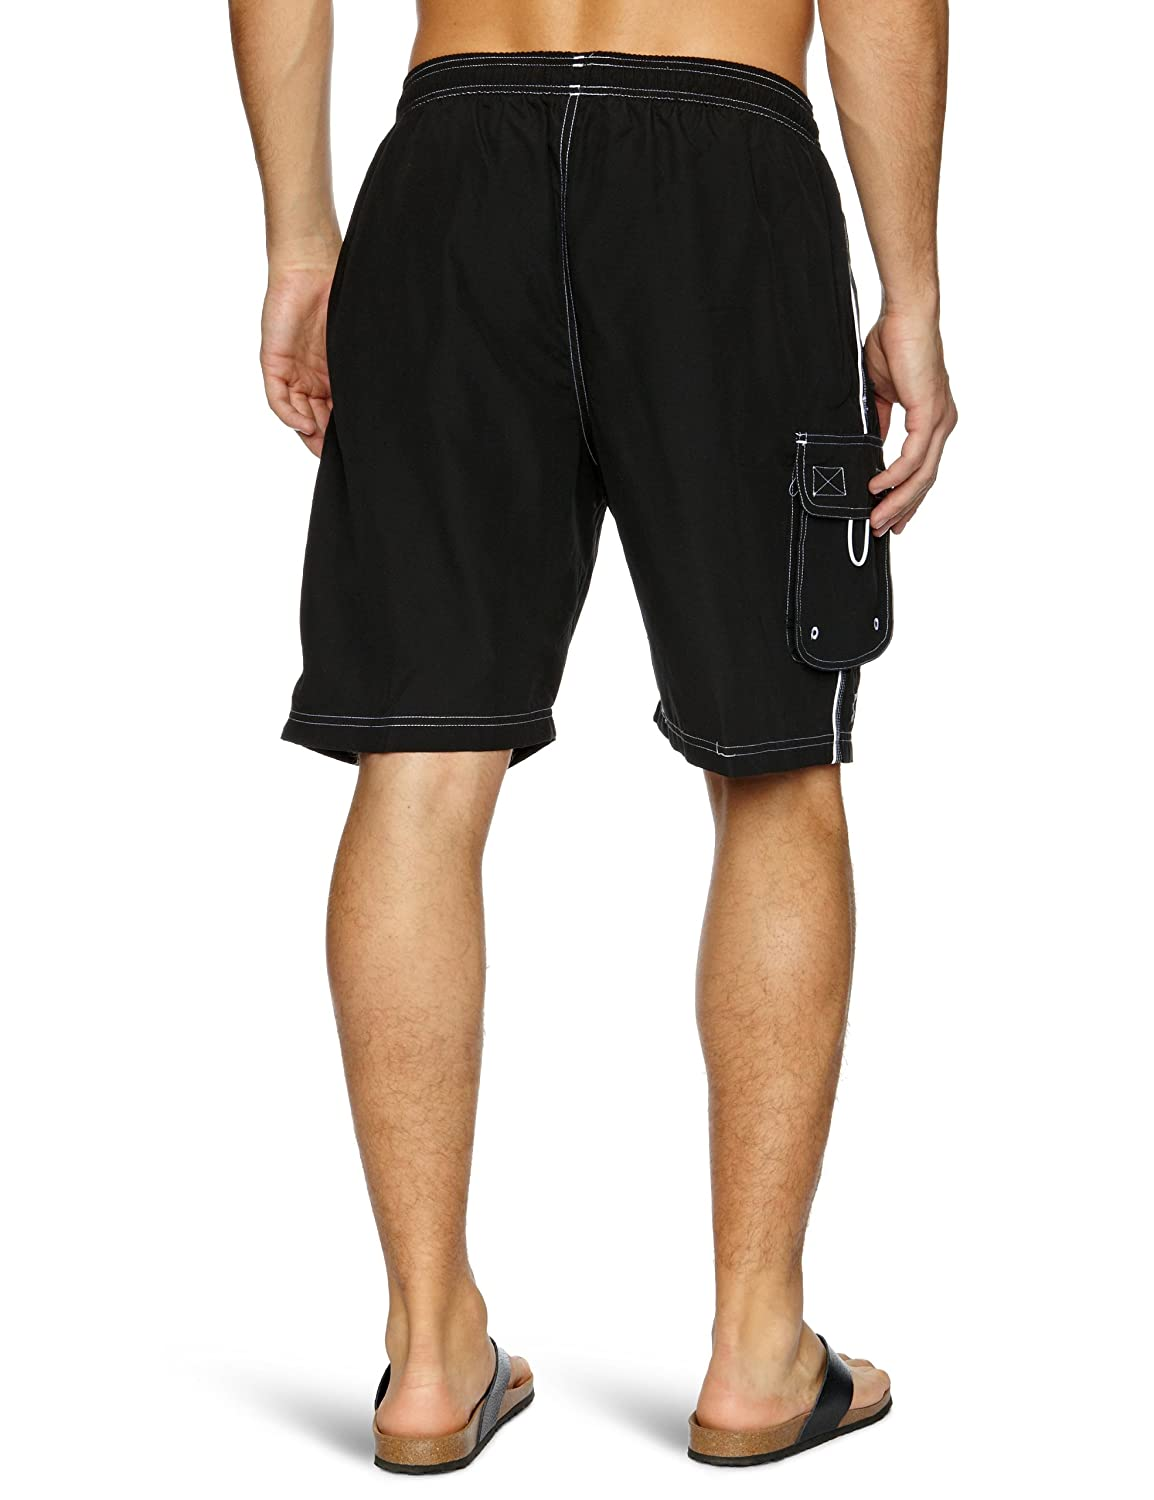 f0799281c6 Amazon.com: TYR Bulldog Sport Competitor Board Shorts: Sports & Outdoors